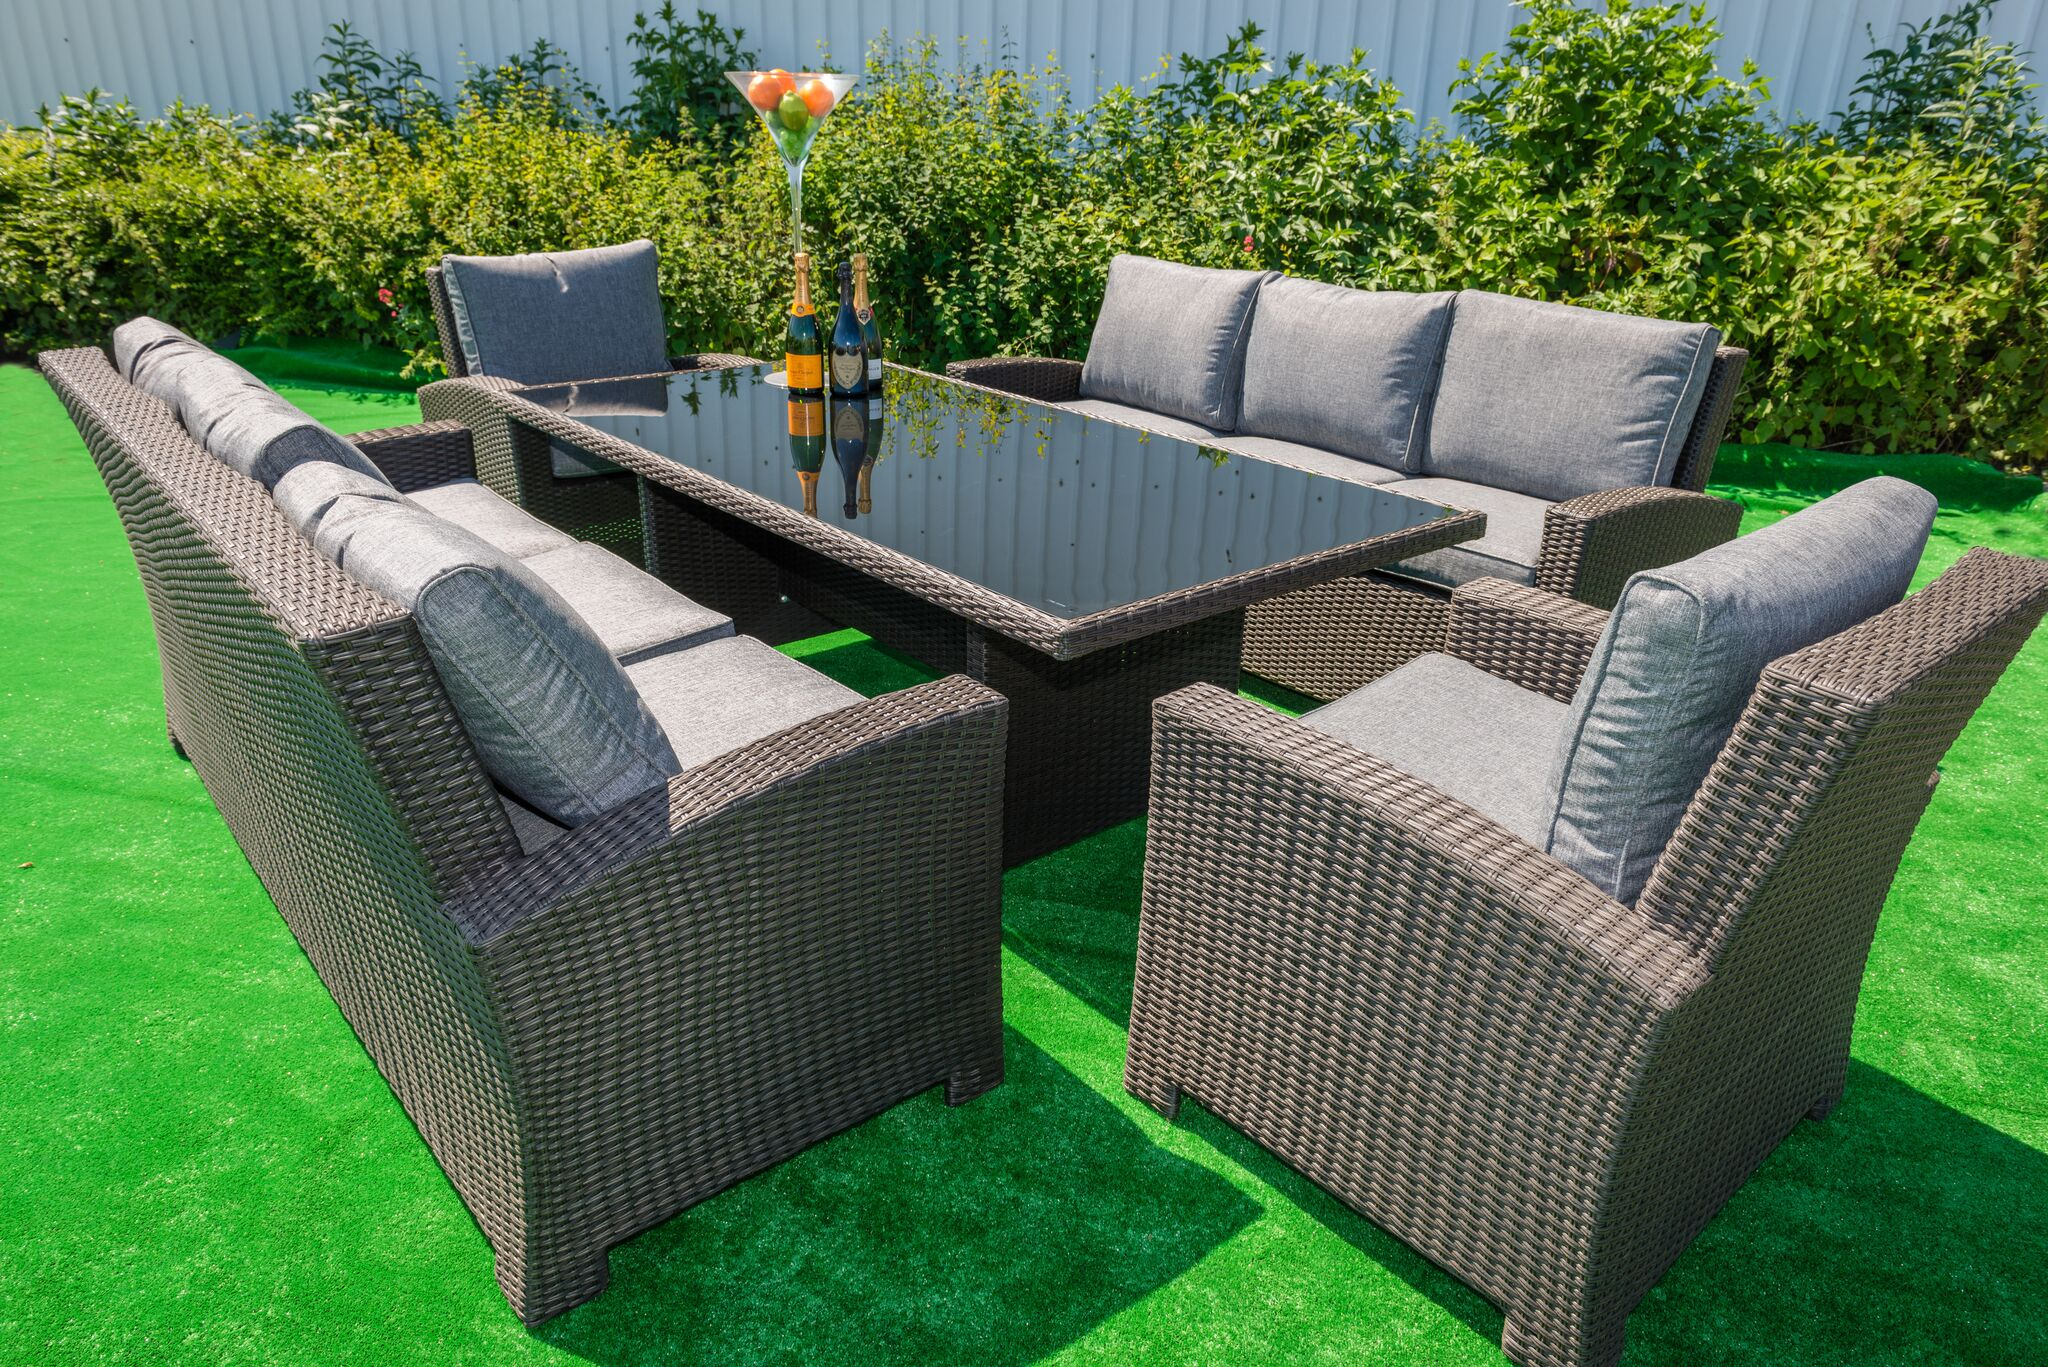 Outdoor Dining In Style With A Rattan Dining Set